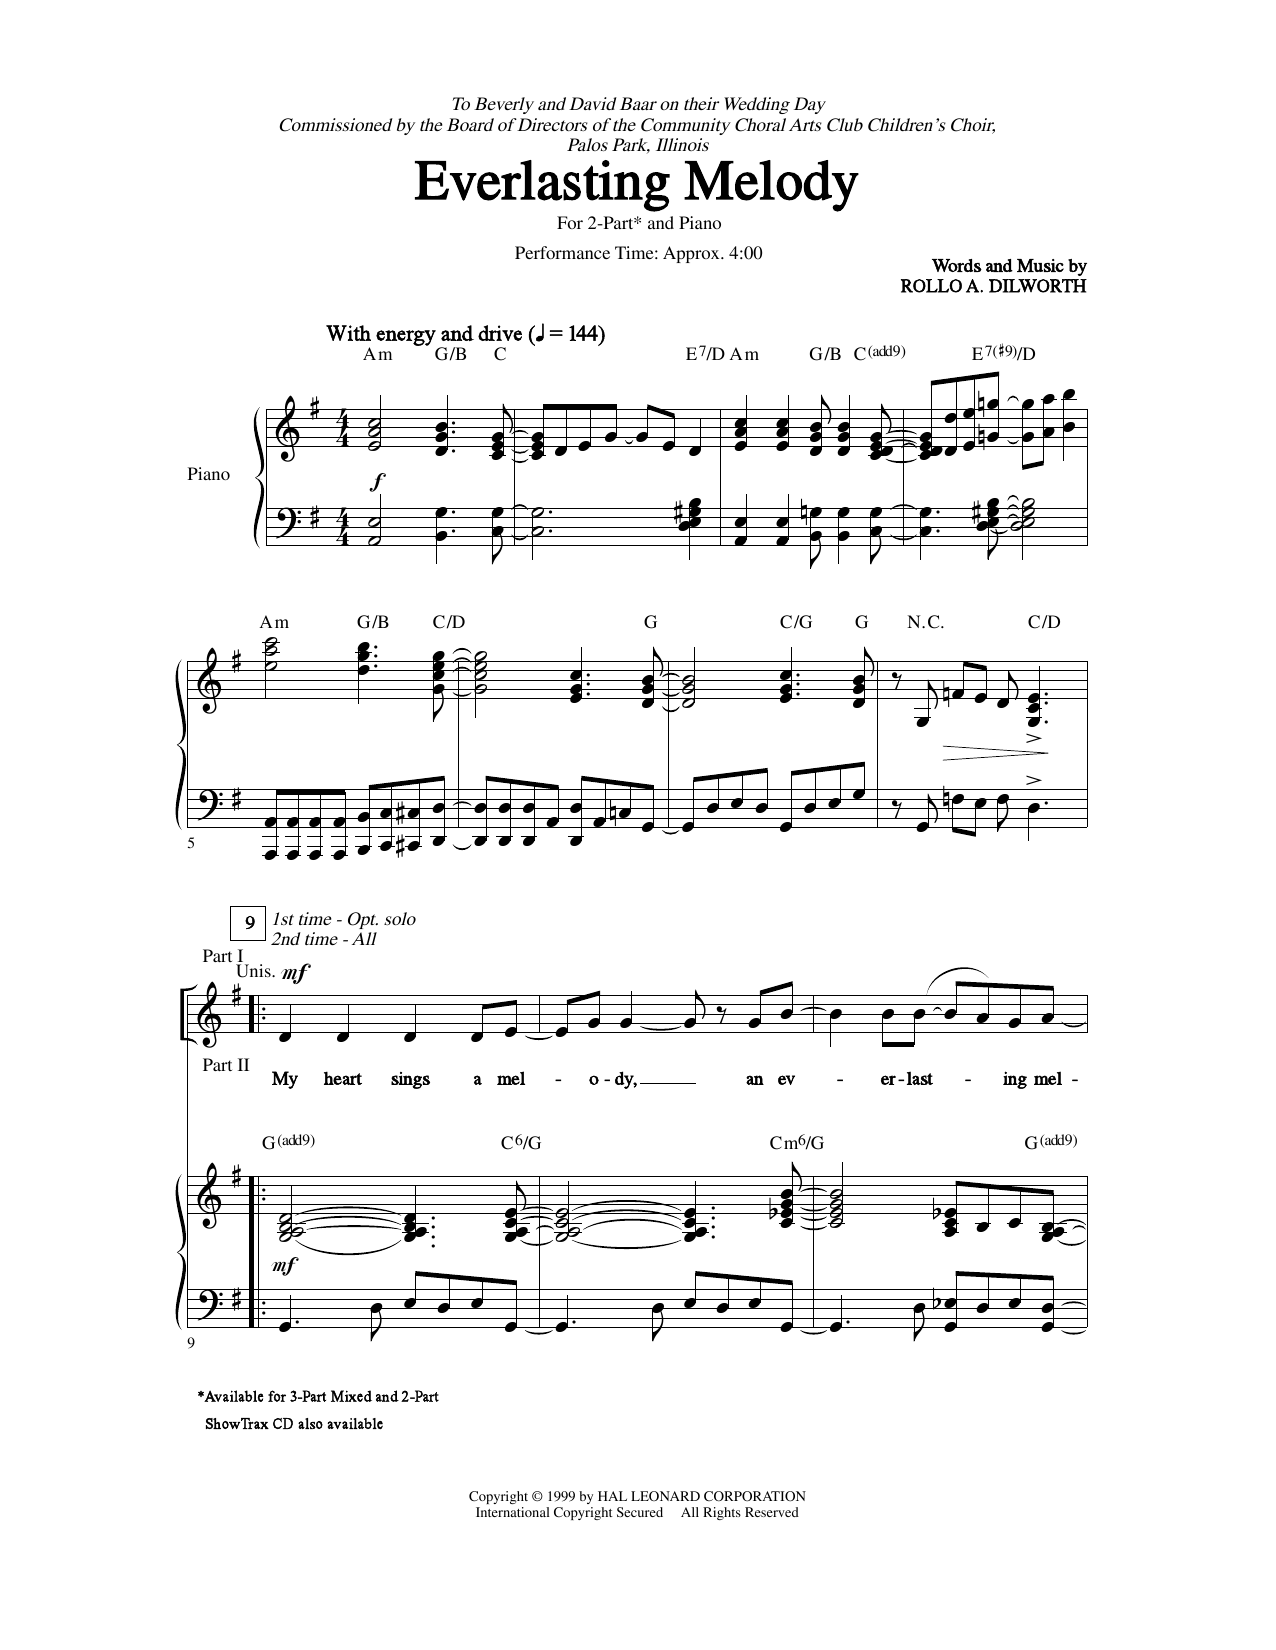 Everlasting Melody Sheet Music